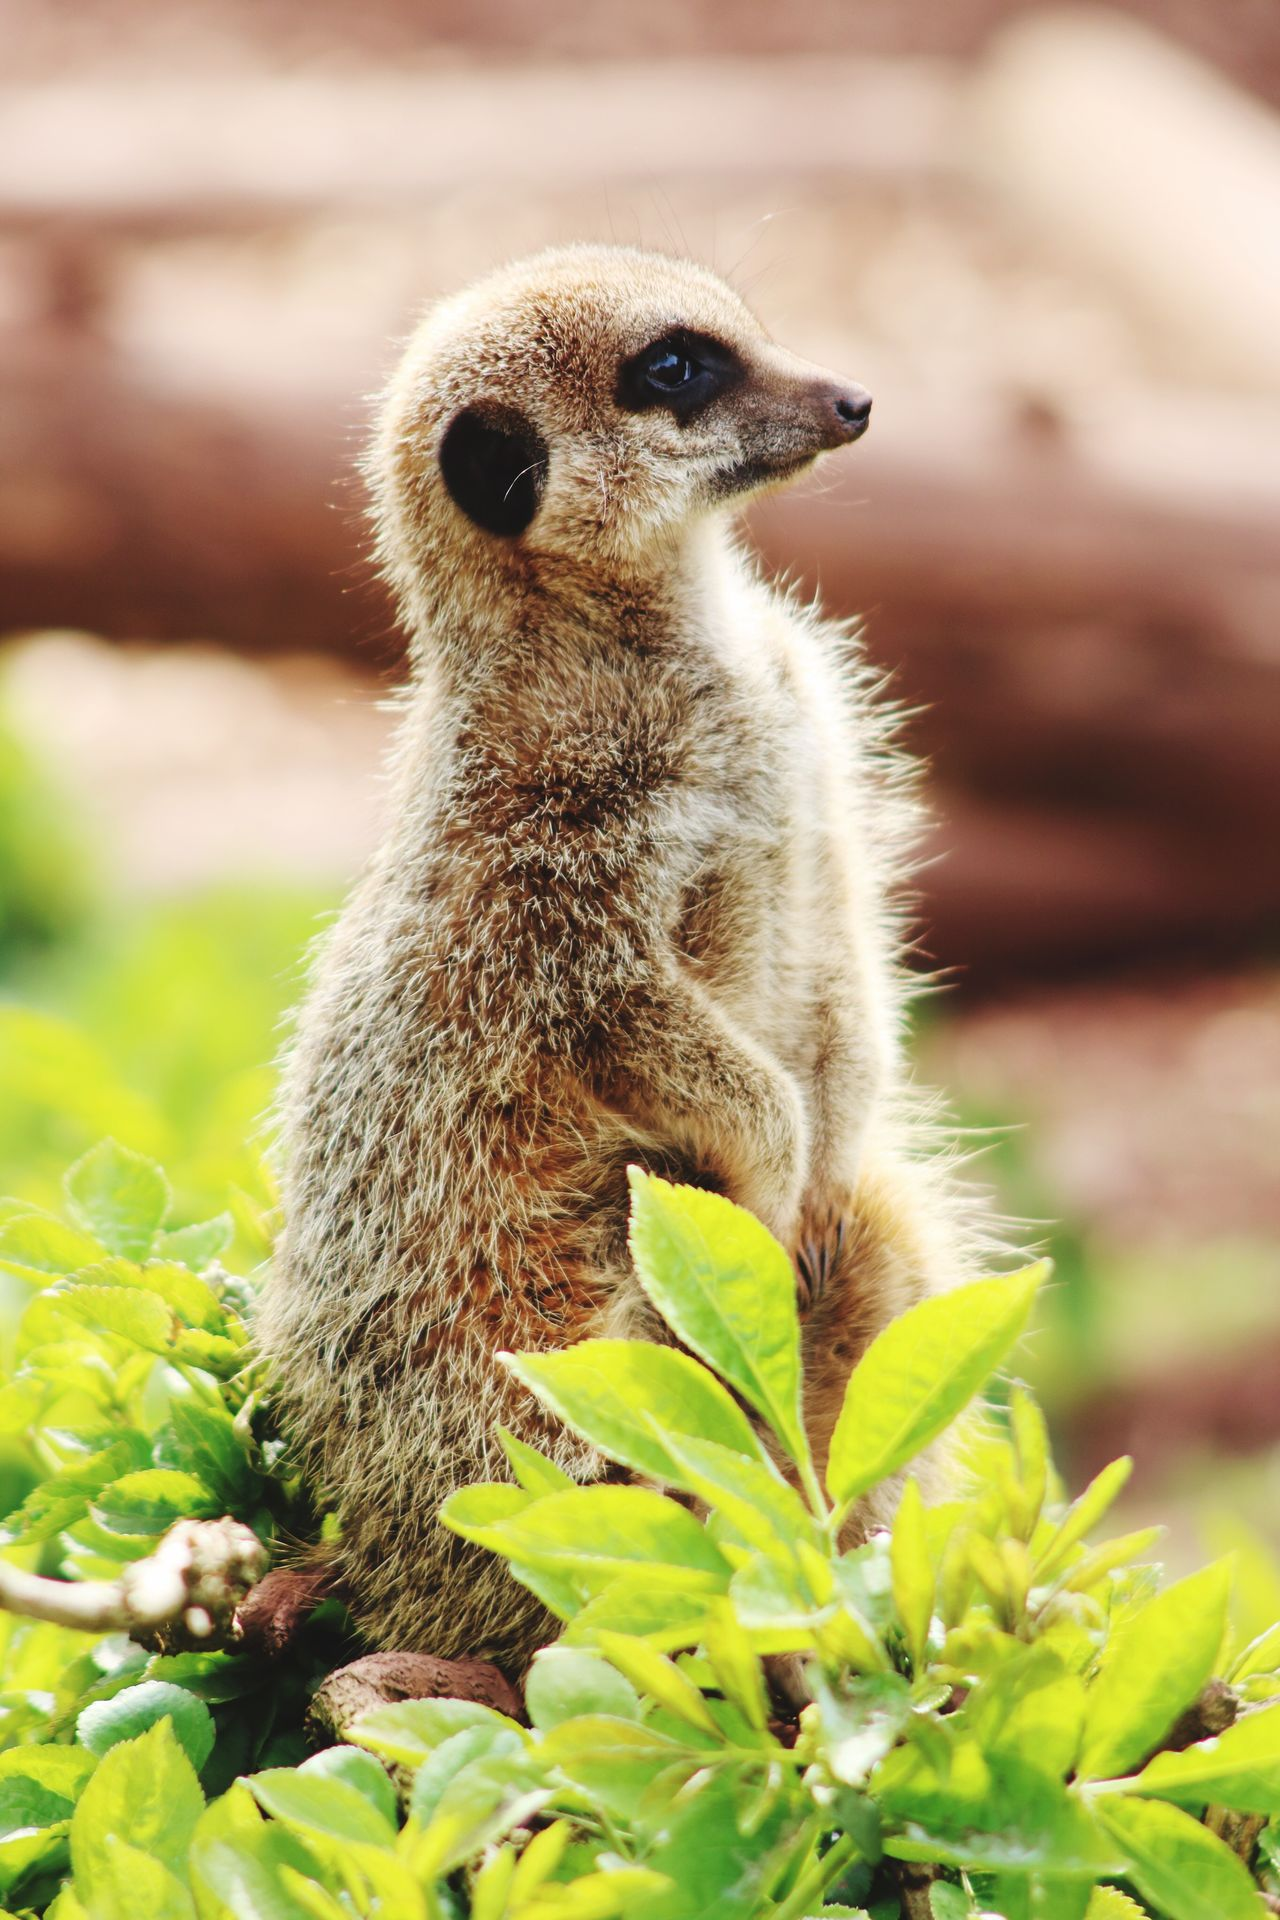 One Animal Animal Themes Animals In The Wild Animal Wildlife Mammal Day Meerkat Outdoors Nature Focus On Foreground Close-up No People Portrait Zoophotography Portrait Photography Lake District Zoo Upclose  South Lake Zoo Nature Keeping Watch